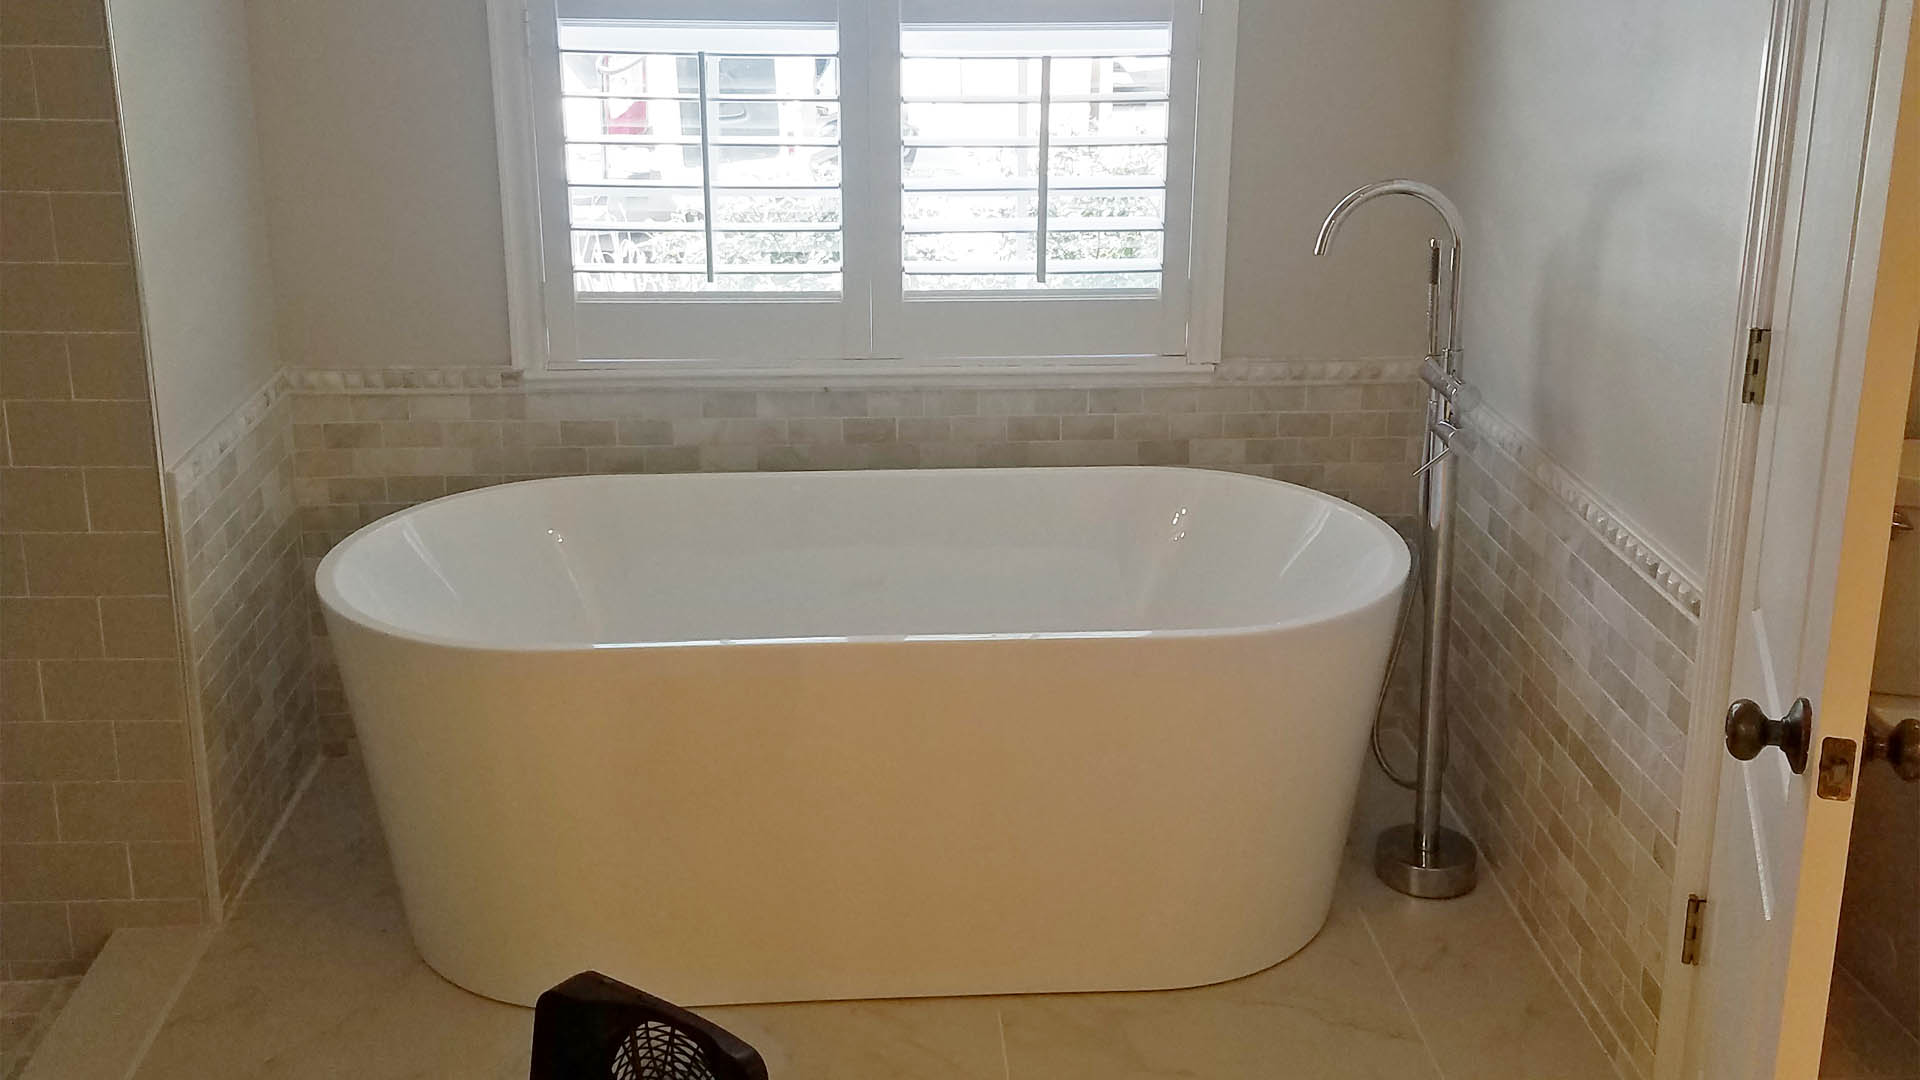 Residential tub and shower install in the Riverview, FL.